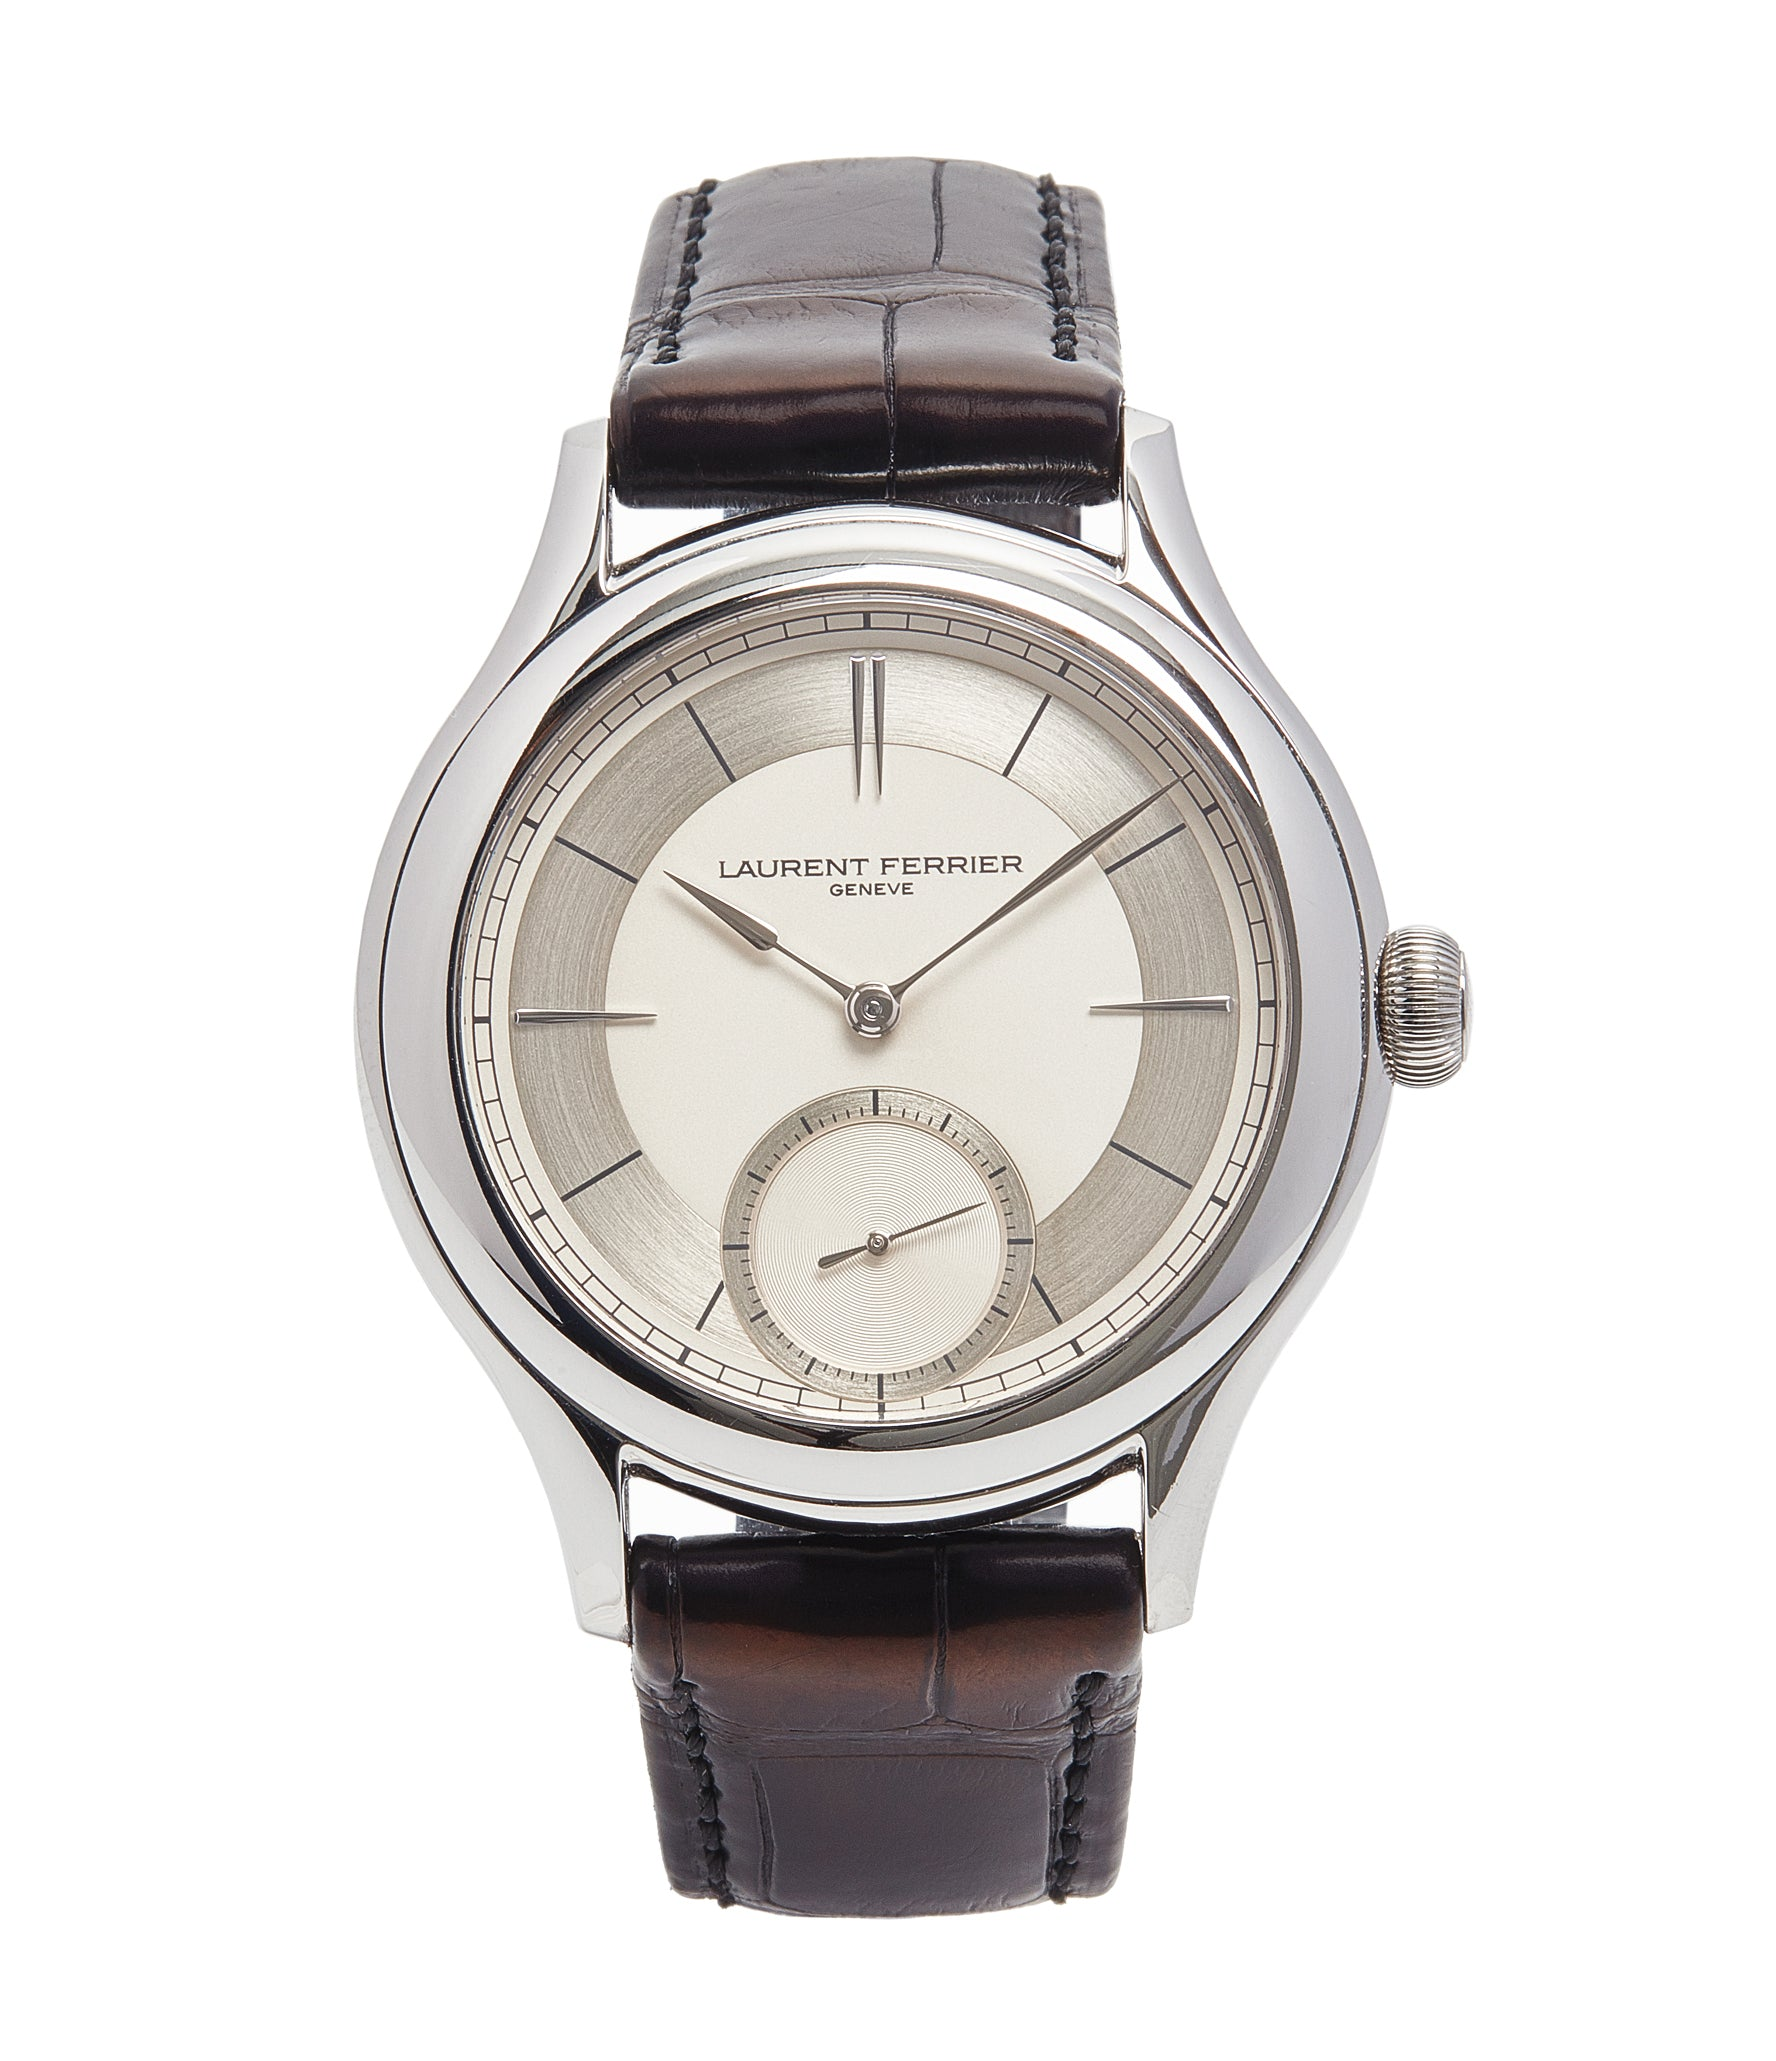 buy Laurent Ferrier Galet Micro-rotor 40 mm platinum time-only dress watch from independent watchmaker for sale online at A Collected Man London UK specialist of rare watches